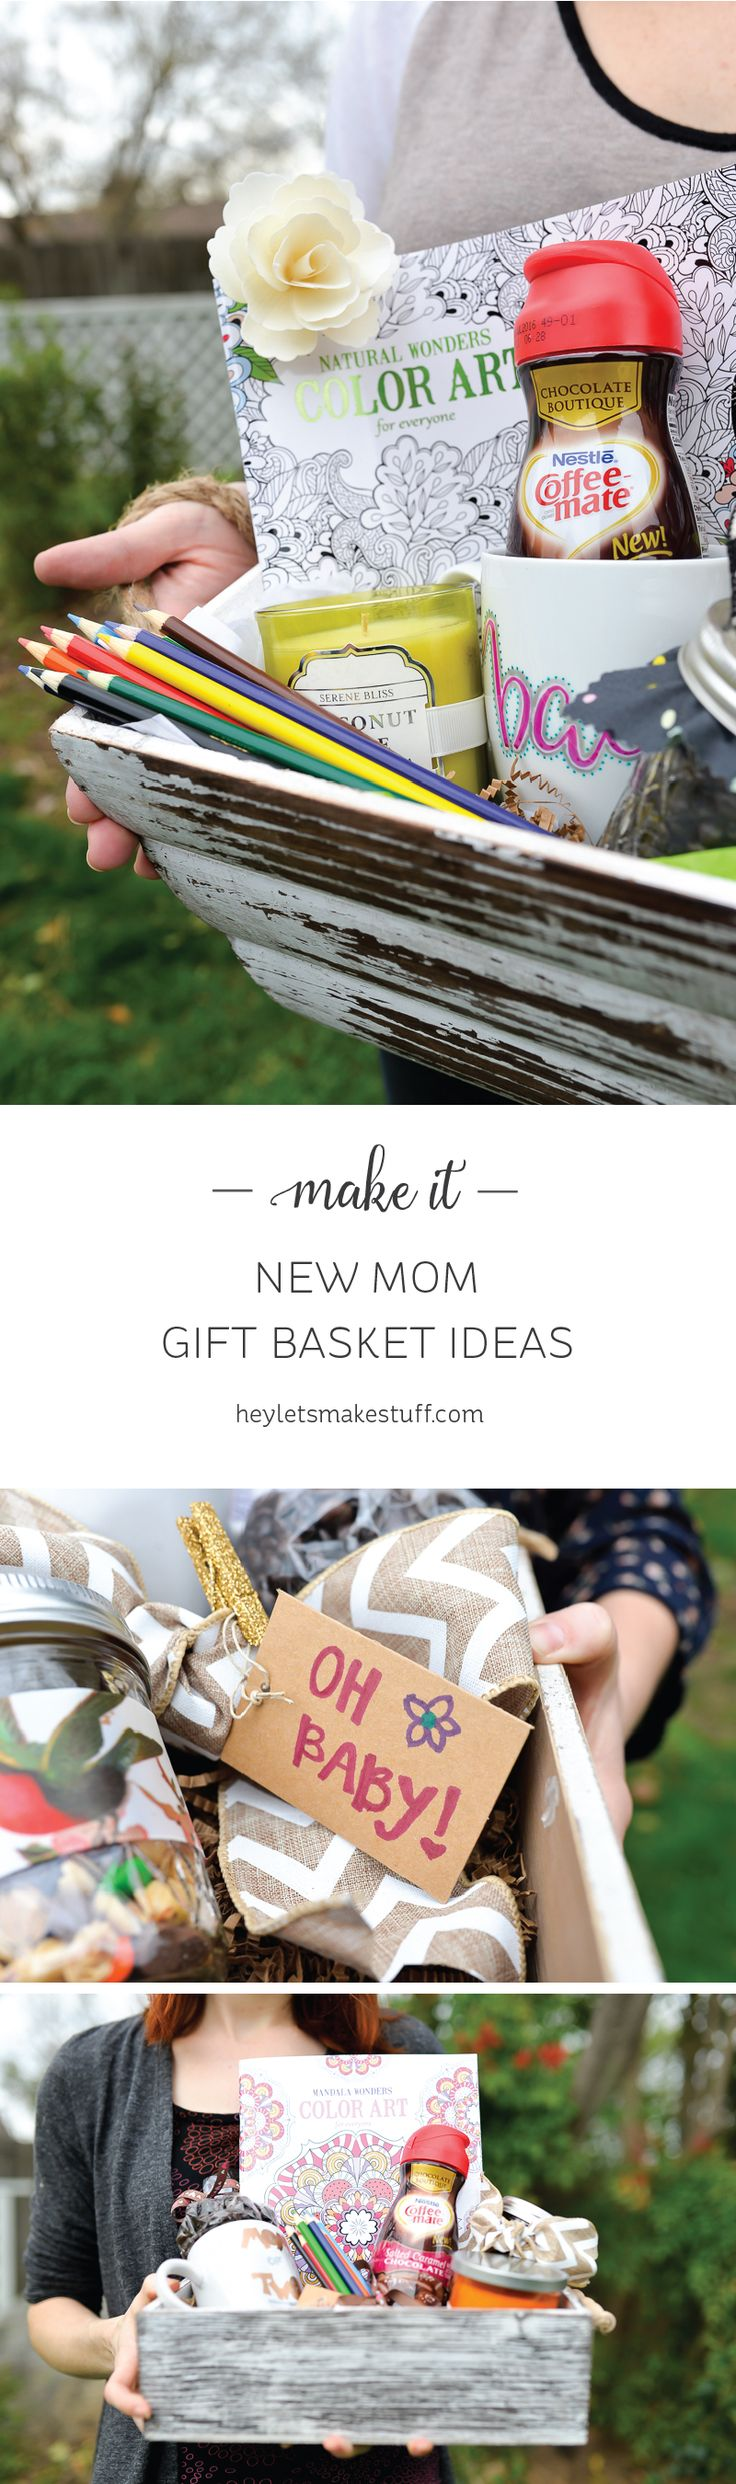 Best 20+ New mom gifts ideas on Pinterest | New babies, Baby gifts ...